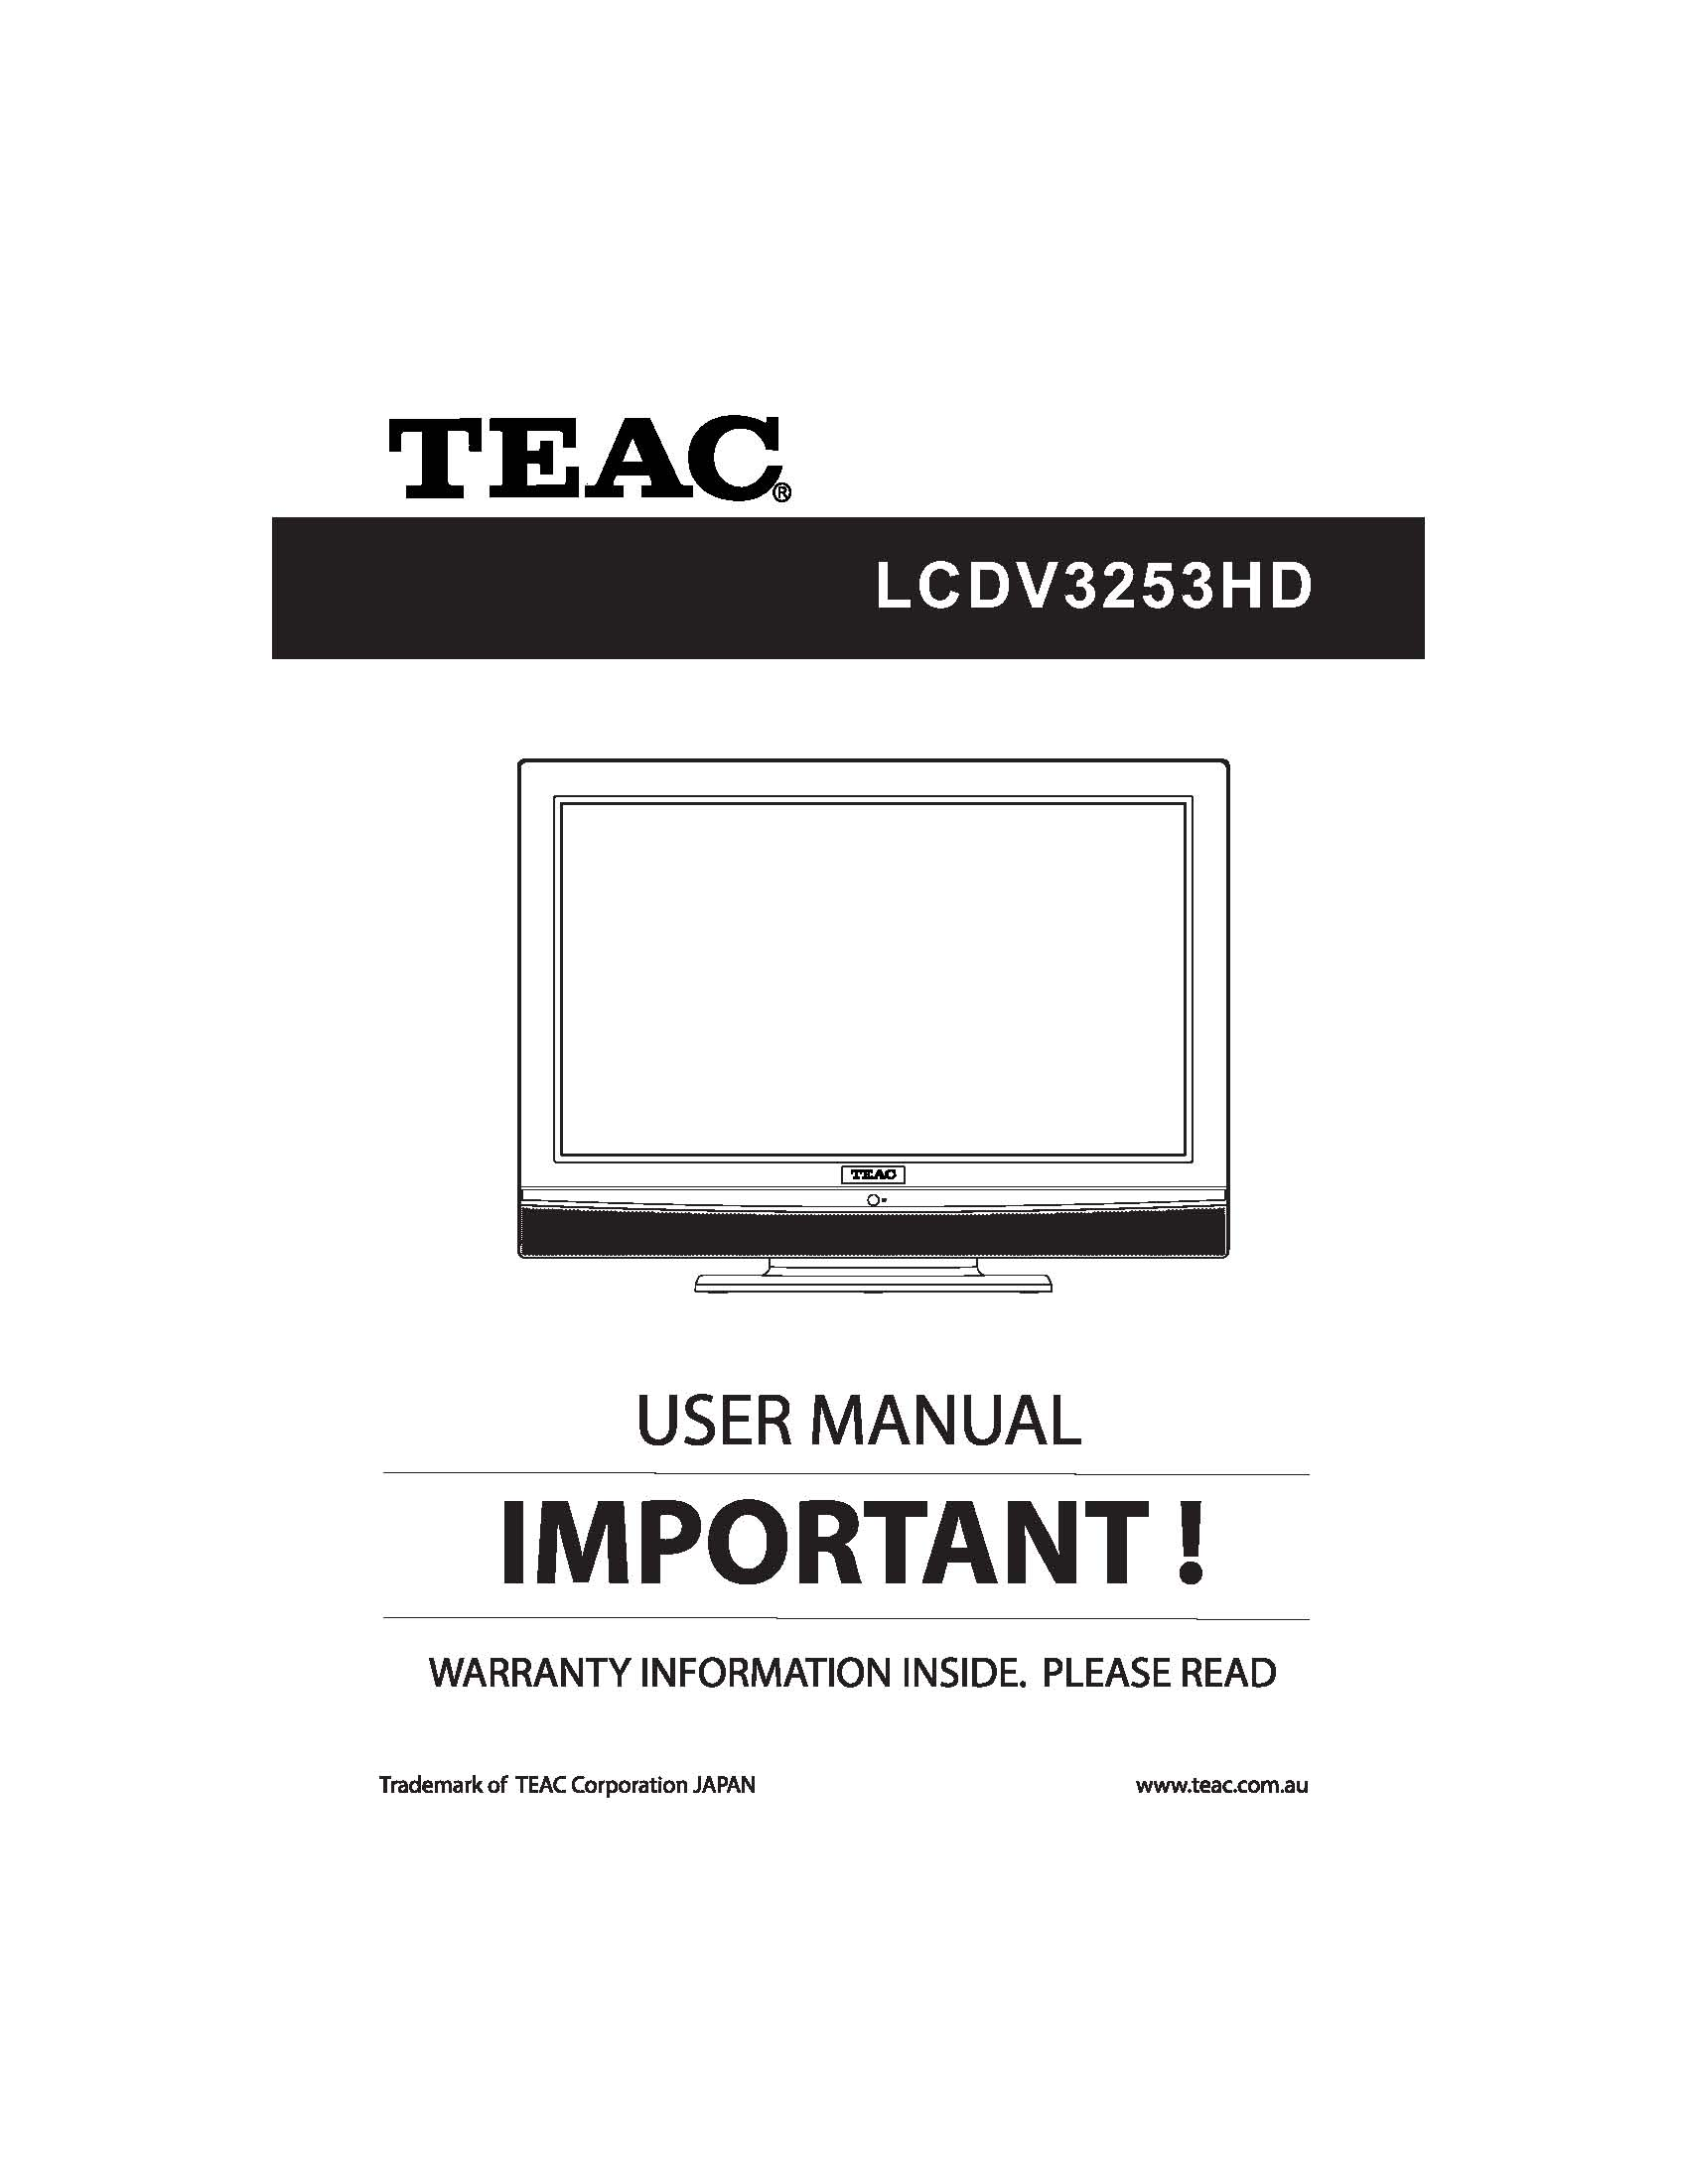 TEAC LCDV3253HD User Manual